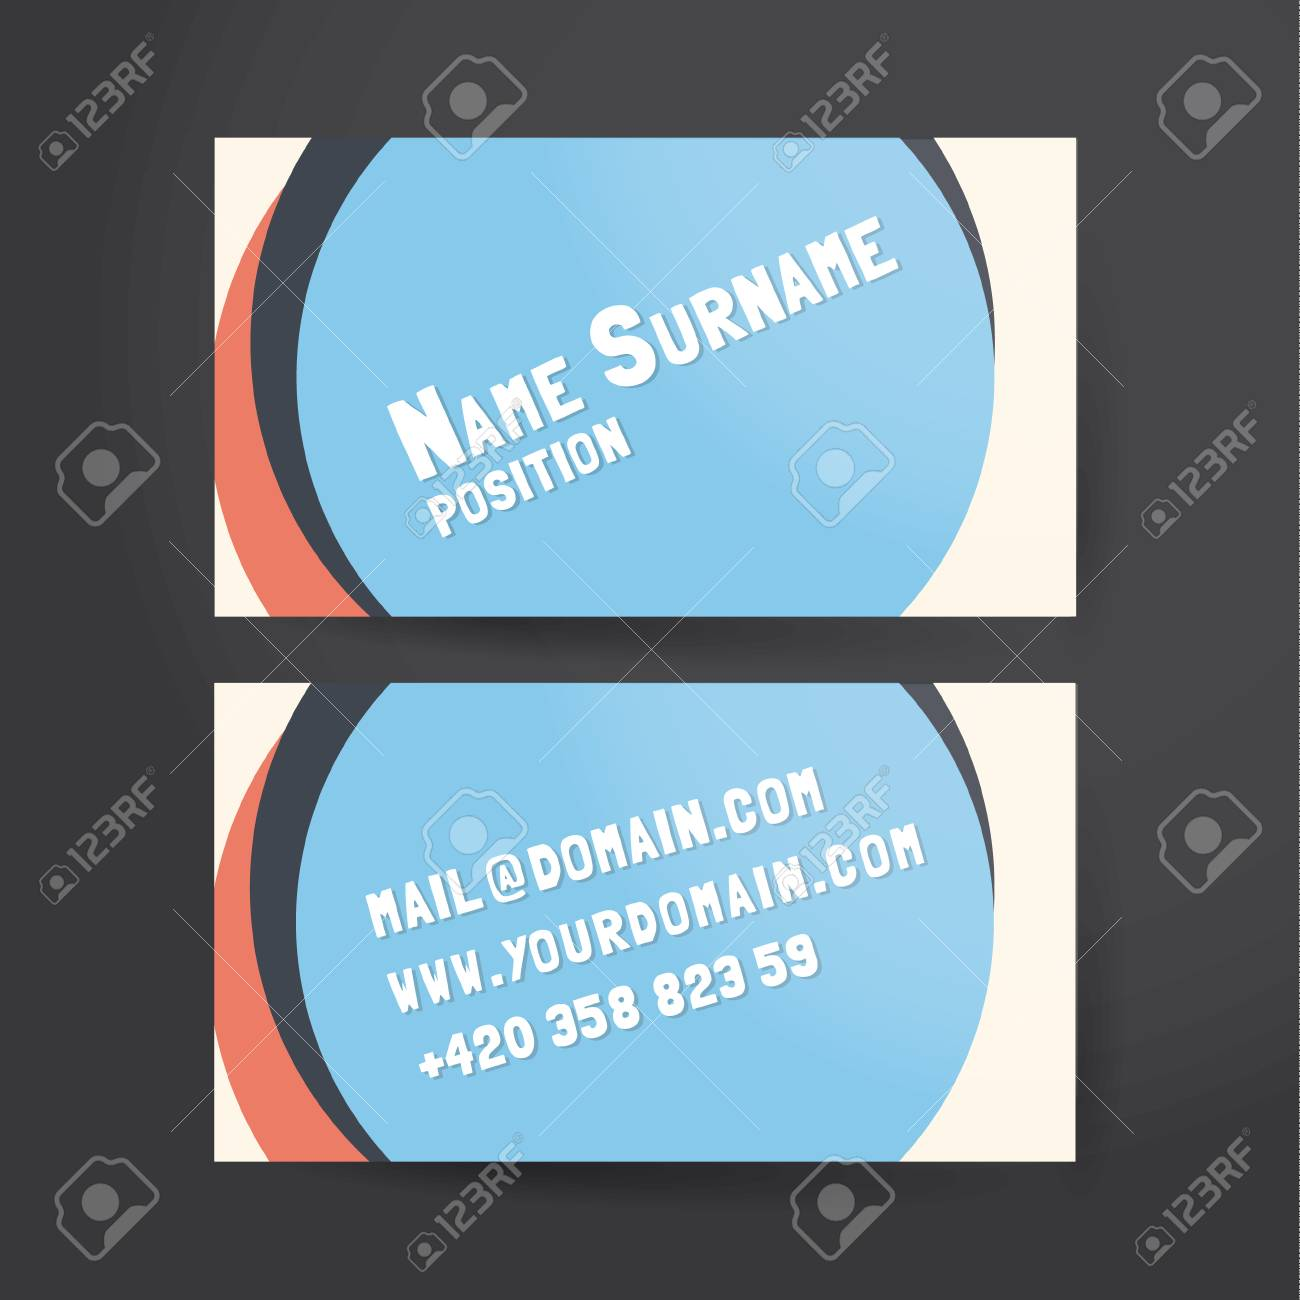 Template For Unusual Funky Business Card. Royalty Free Cliparts ...